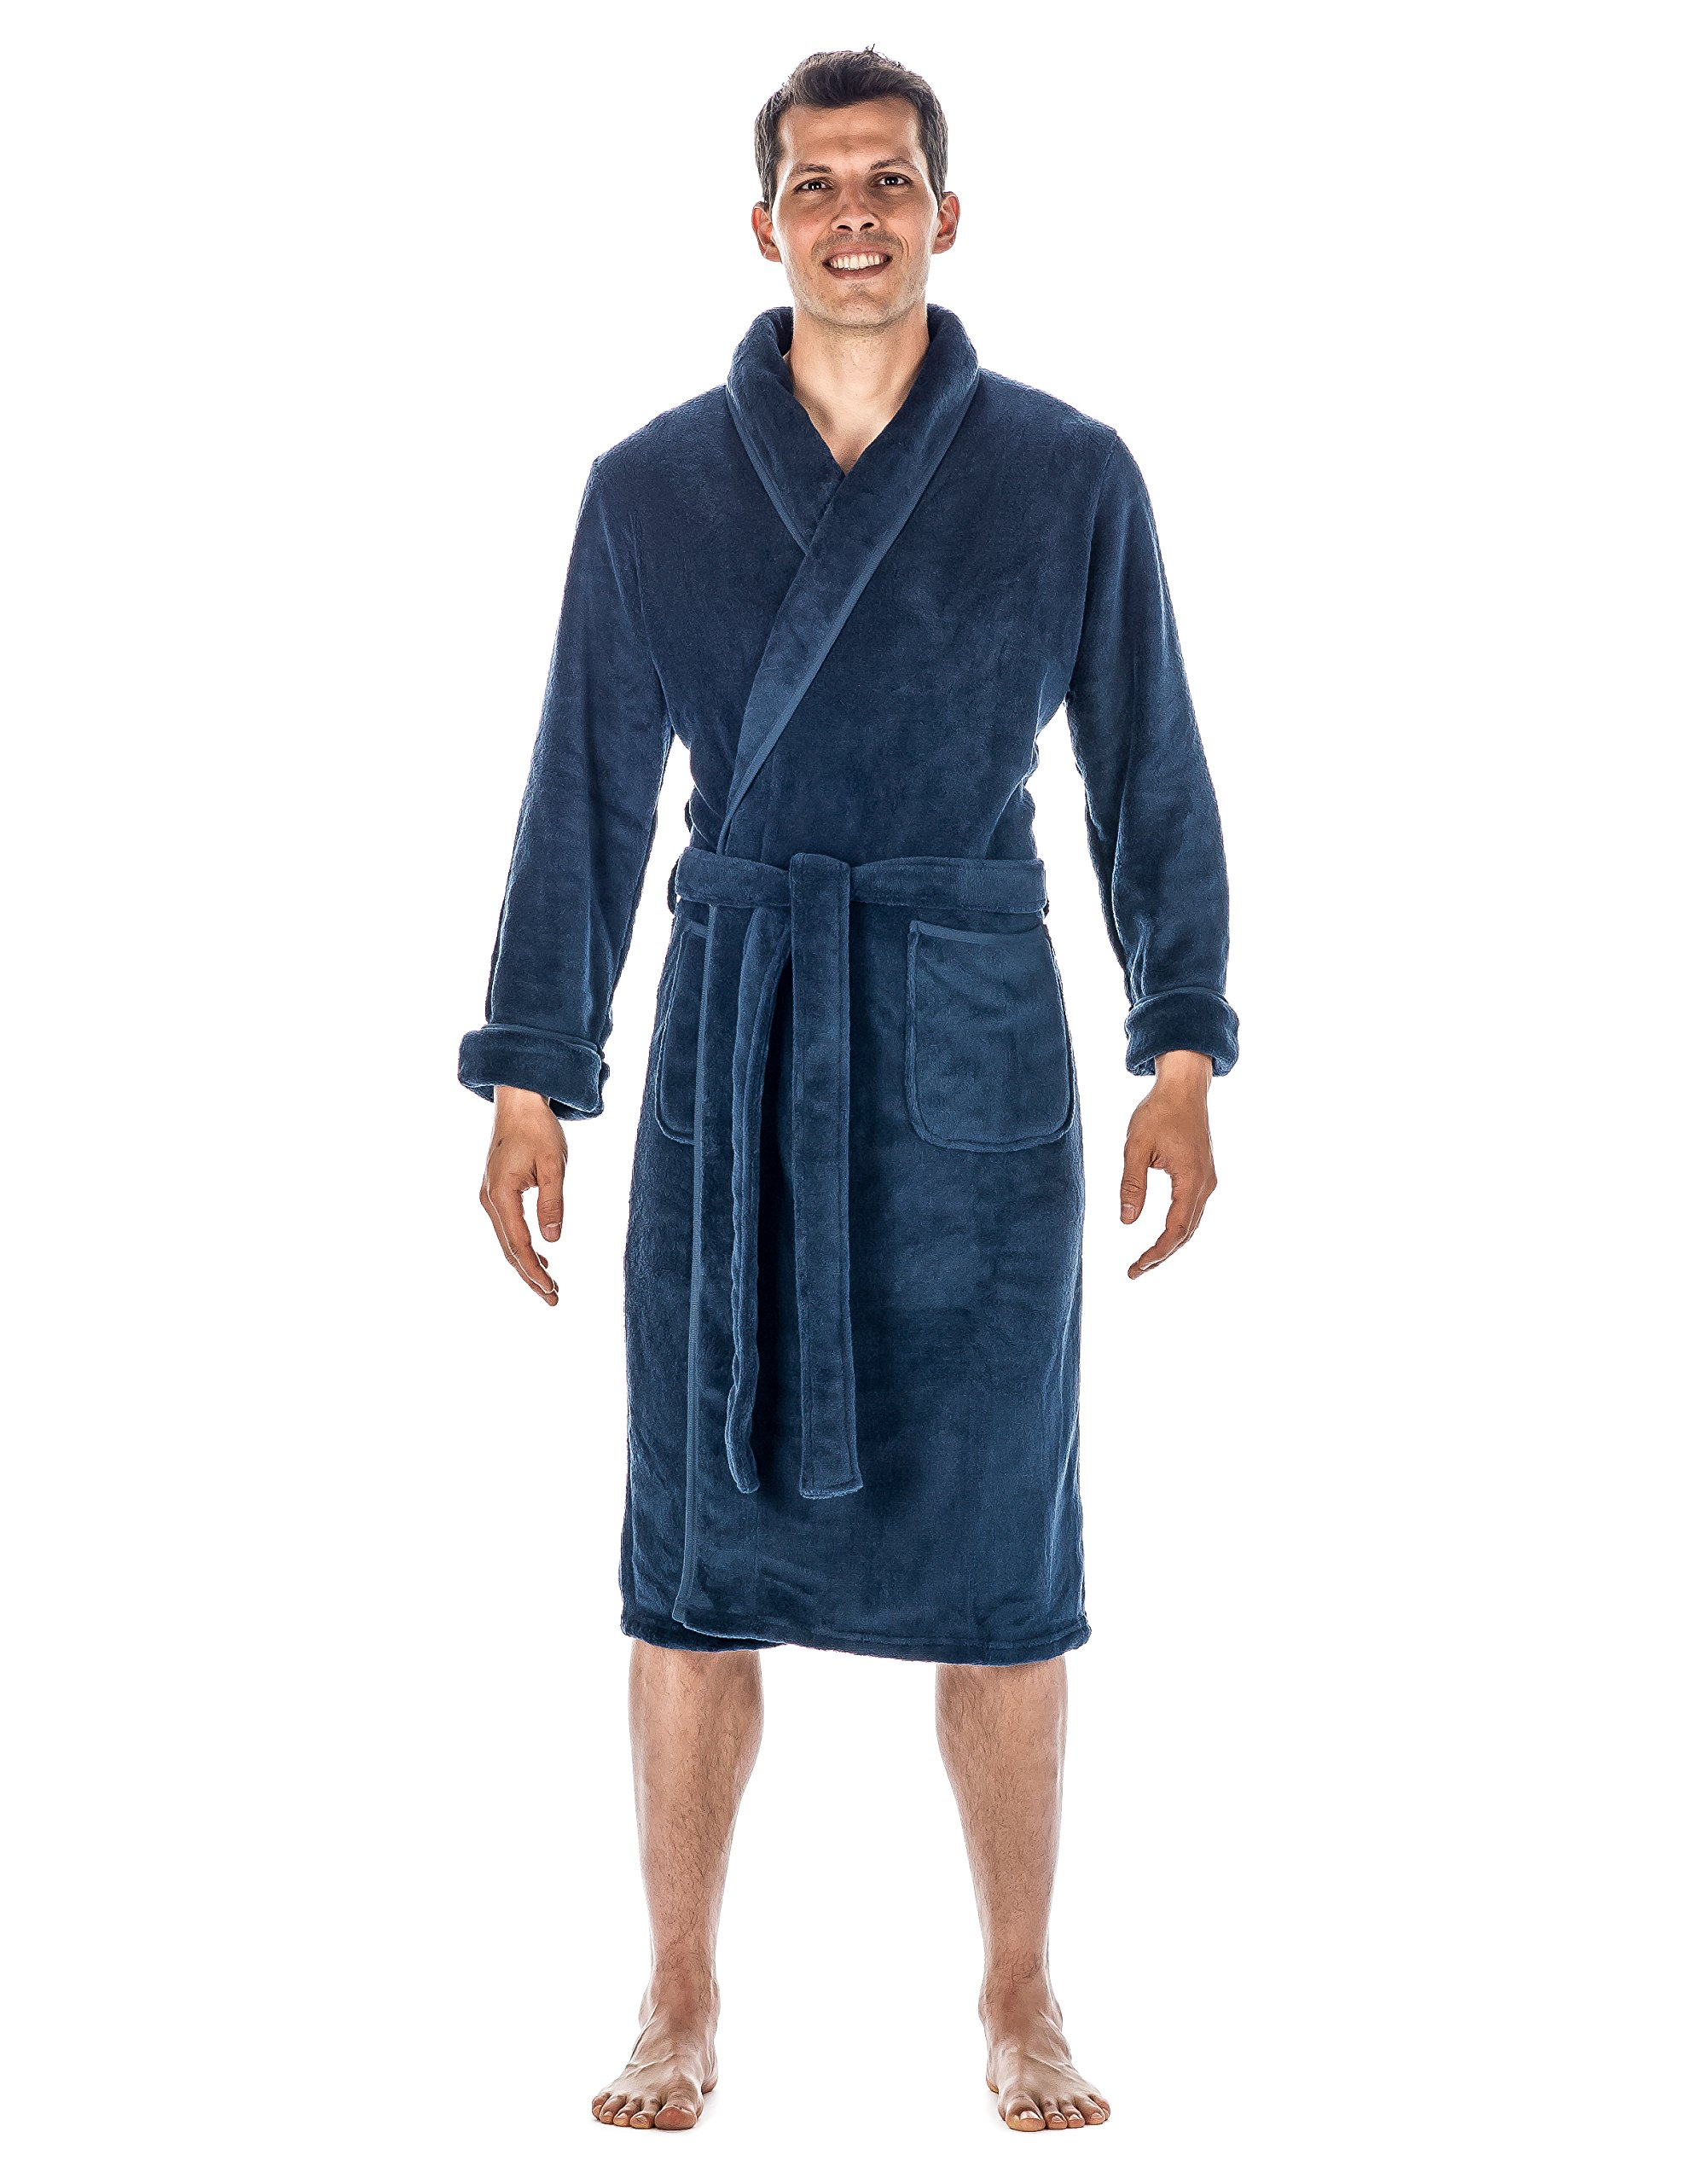 Noble Mount Mens Premium Coral Microfleece Plush Spa Bath Robe product image 2e0a71cfd